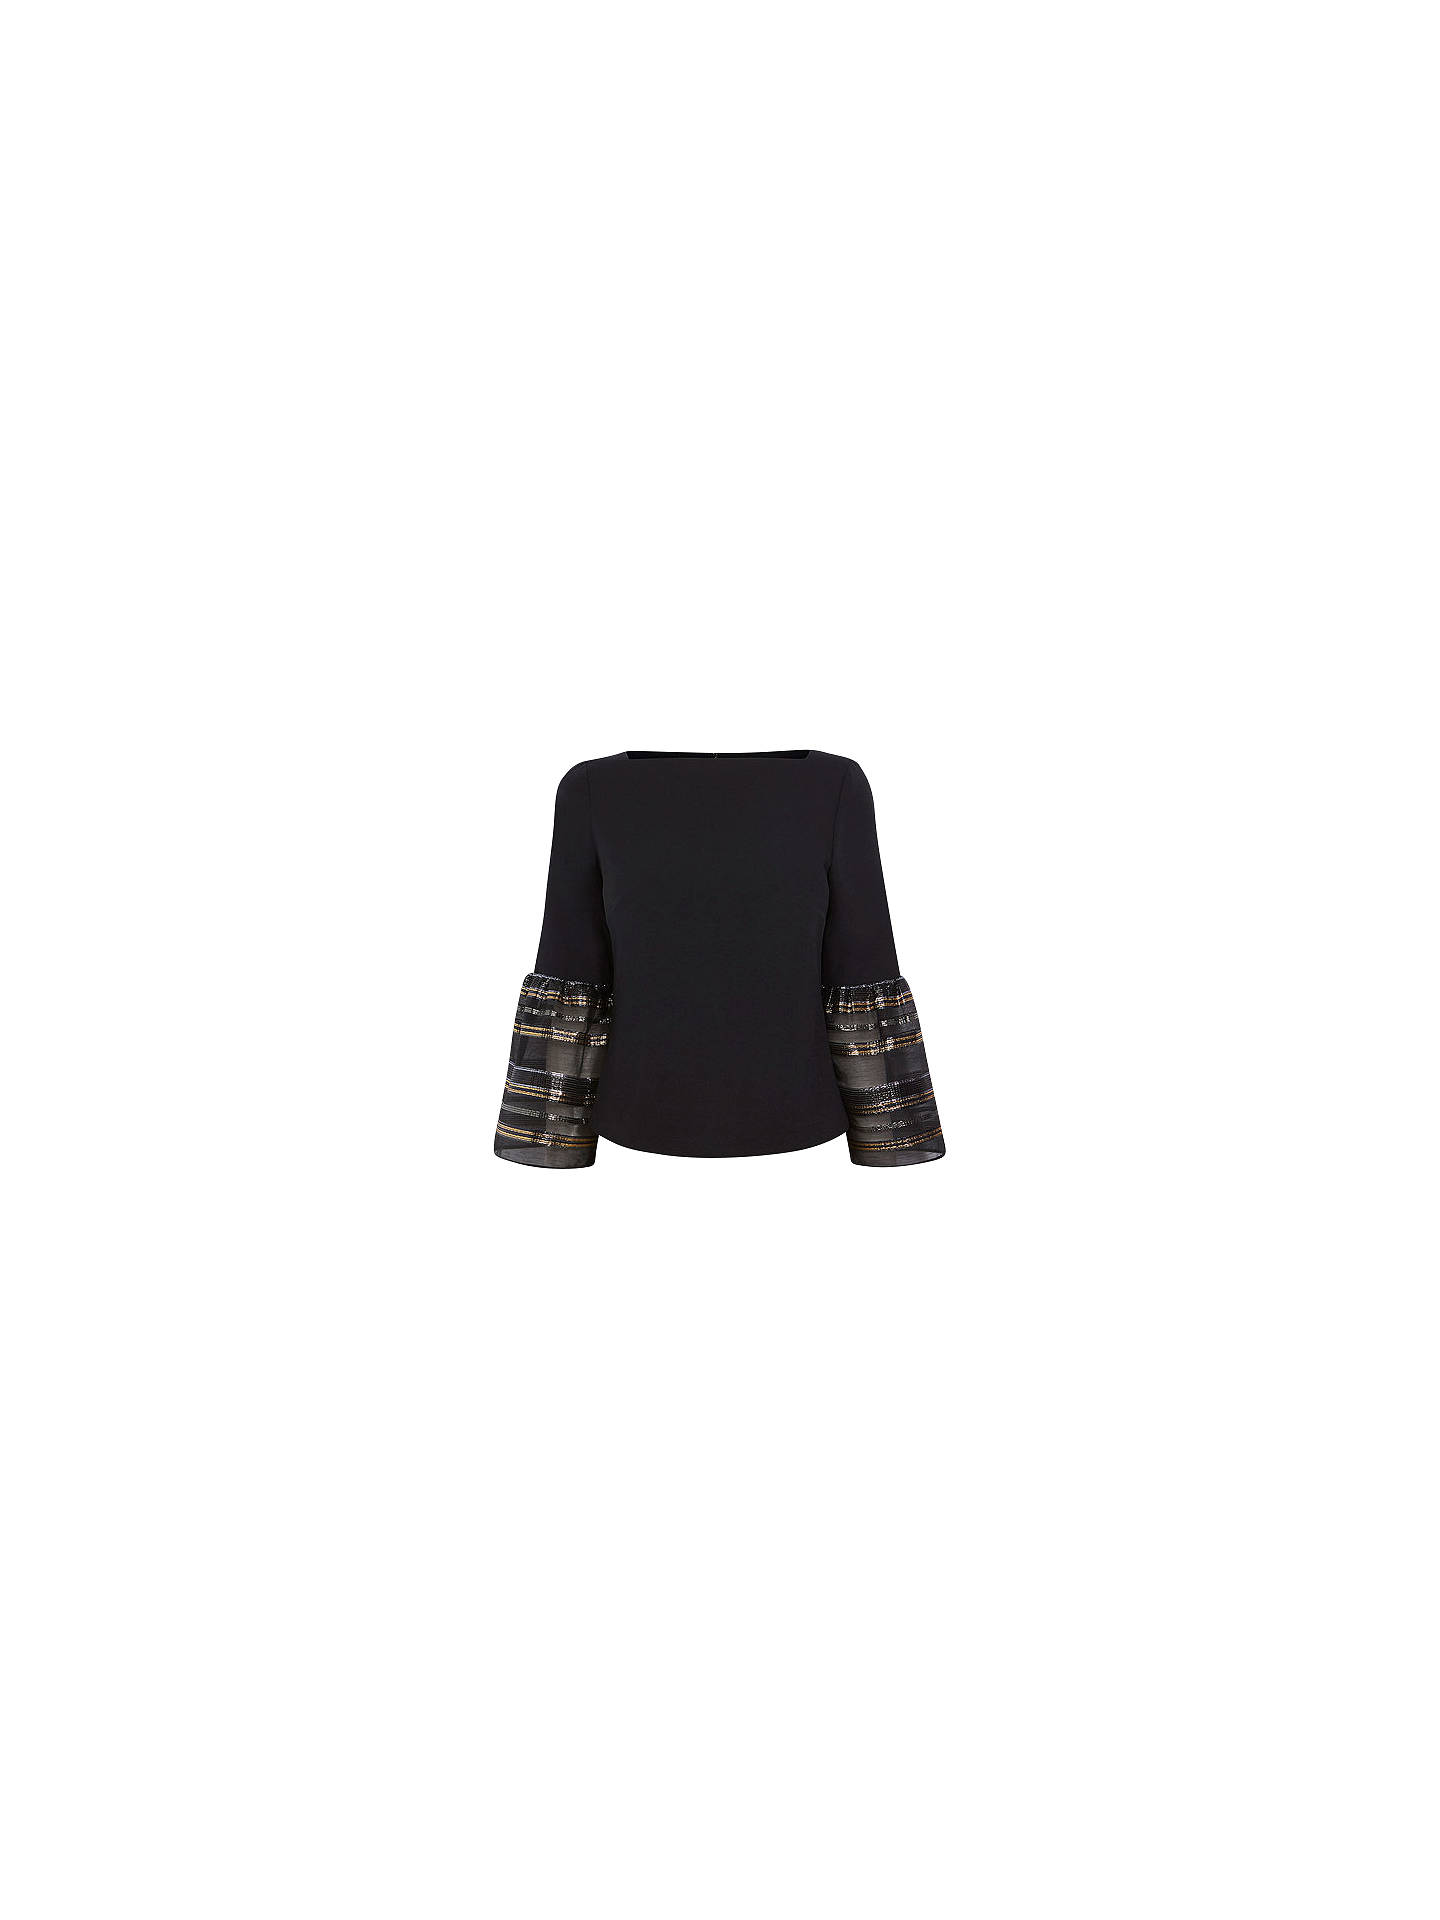 BuyCoast Keji Stripe Sleeve Top, Black, 6 Online at johnlewis.com